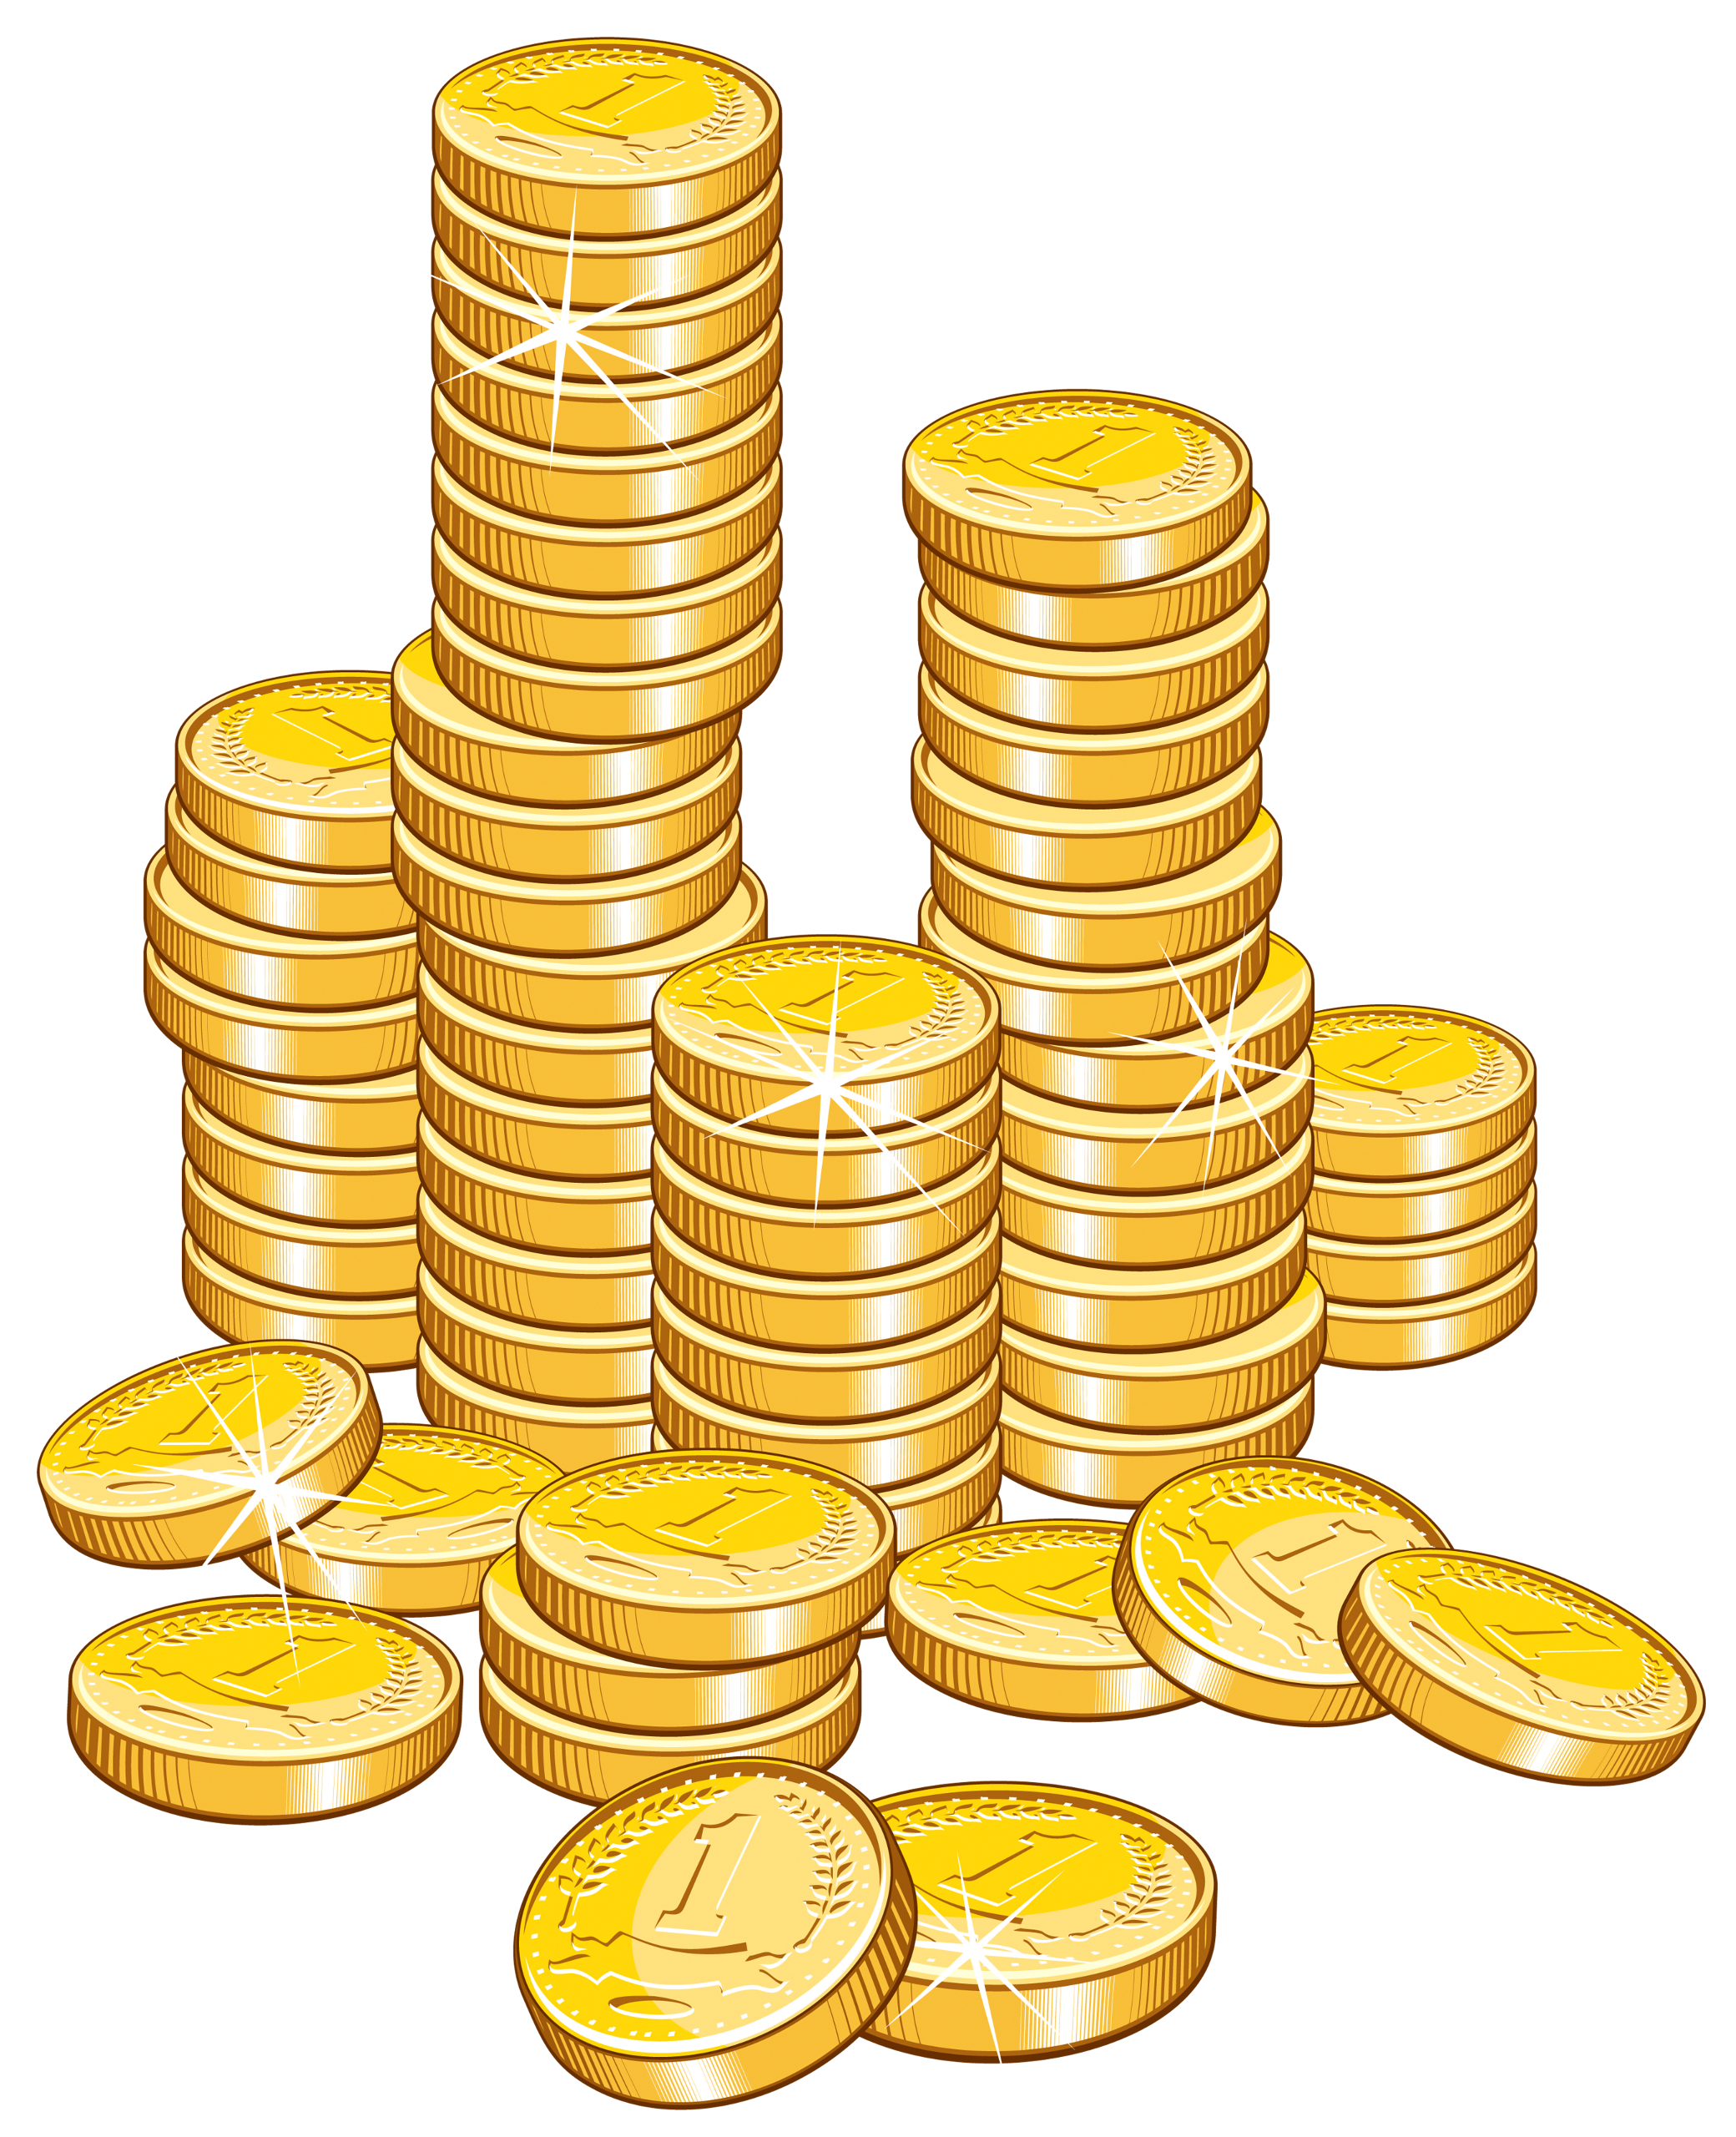 penny clipart transparent background